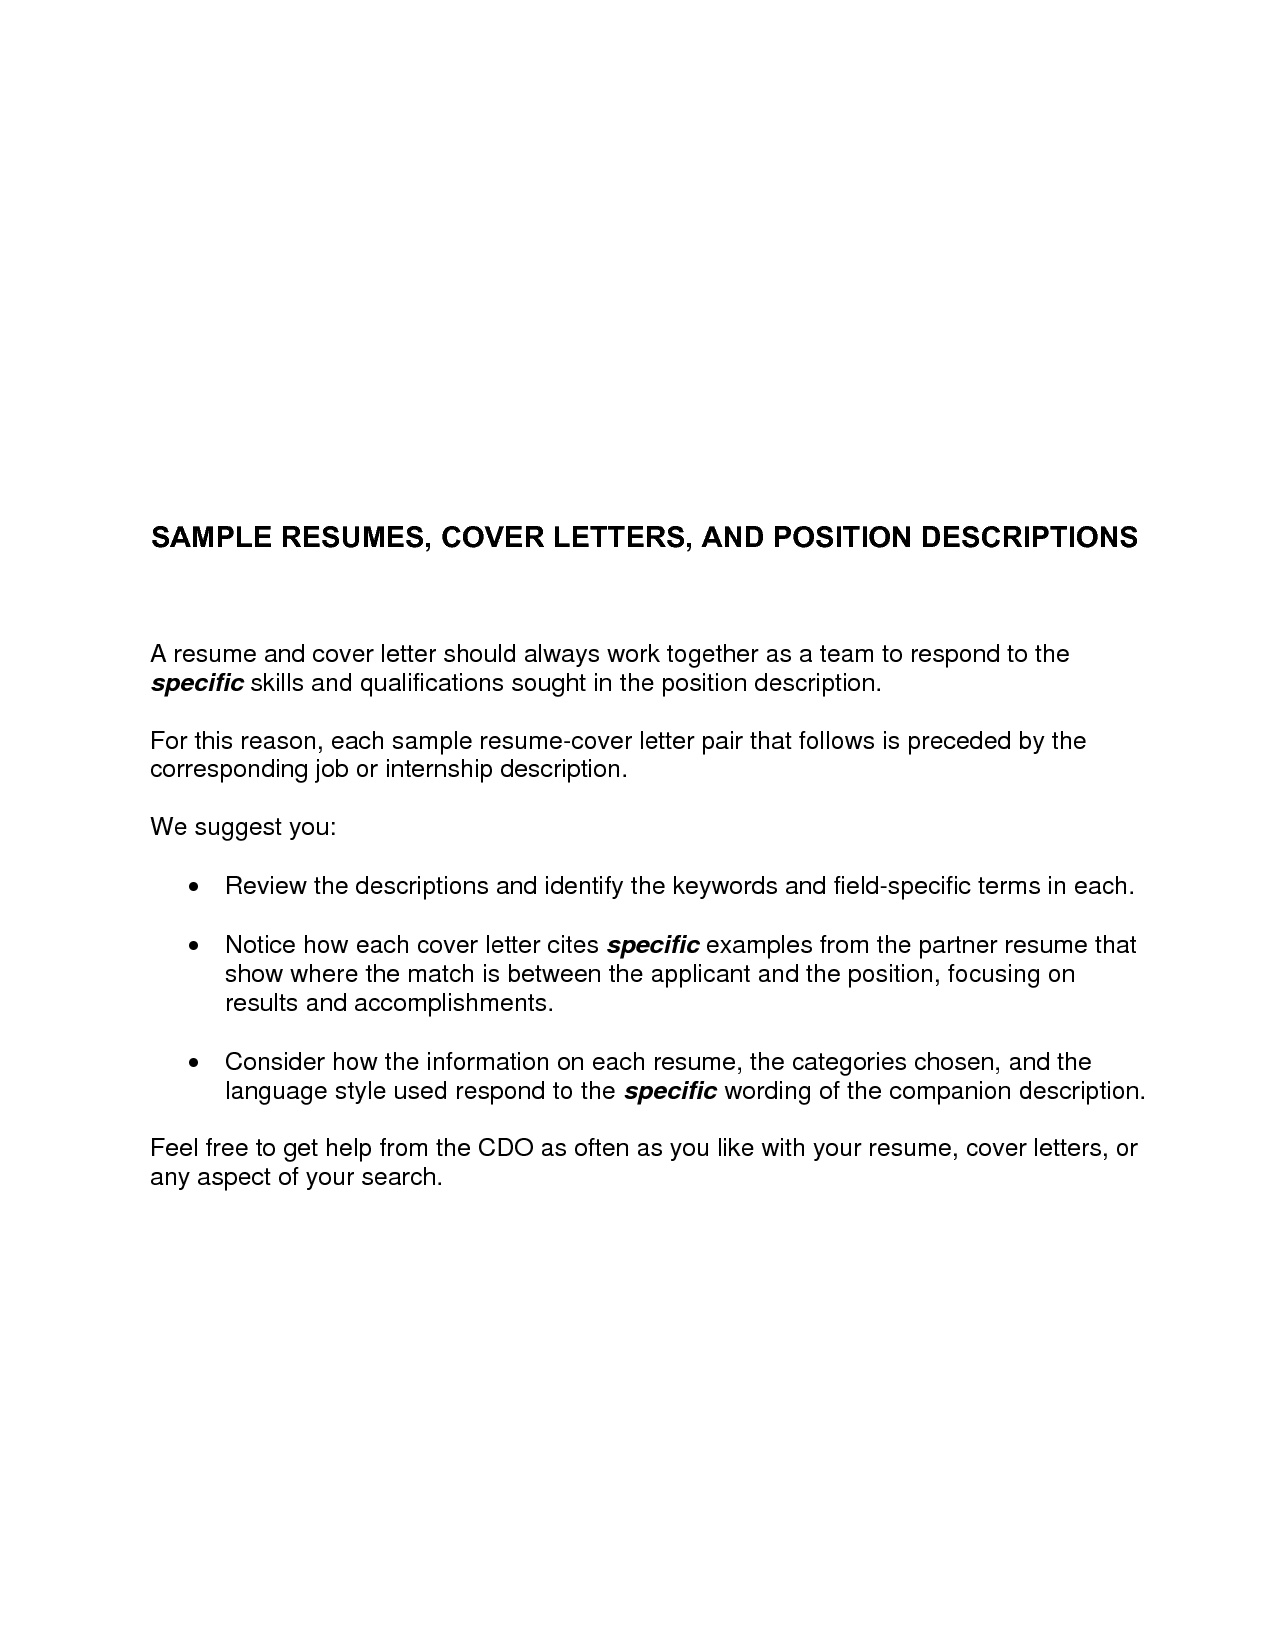 cover letter best cover letters samples statement your technical cover letters for resumes best templatesimple cover